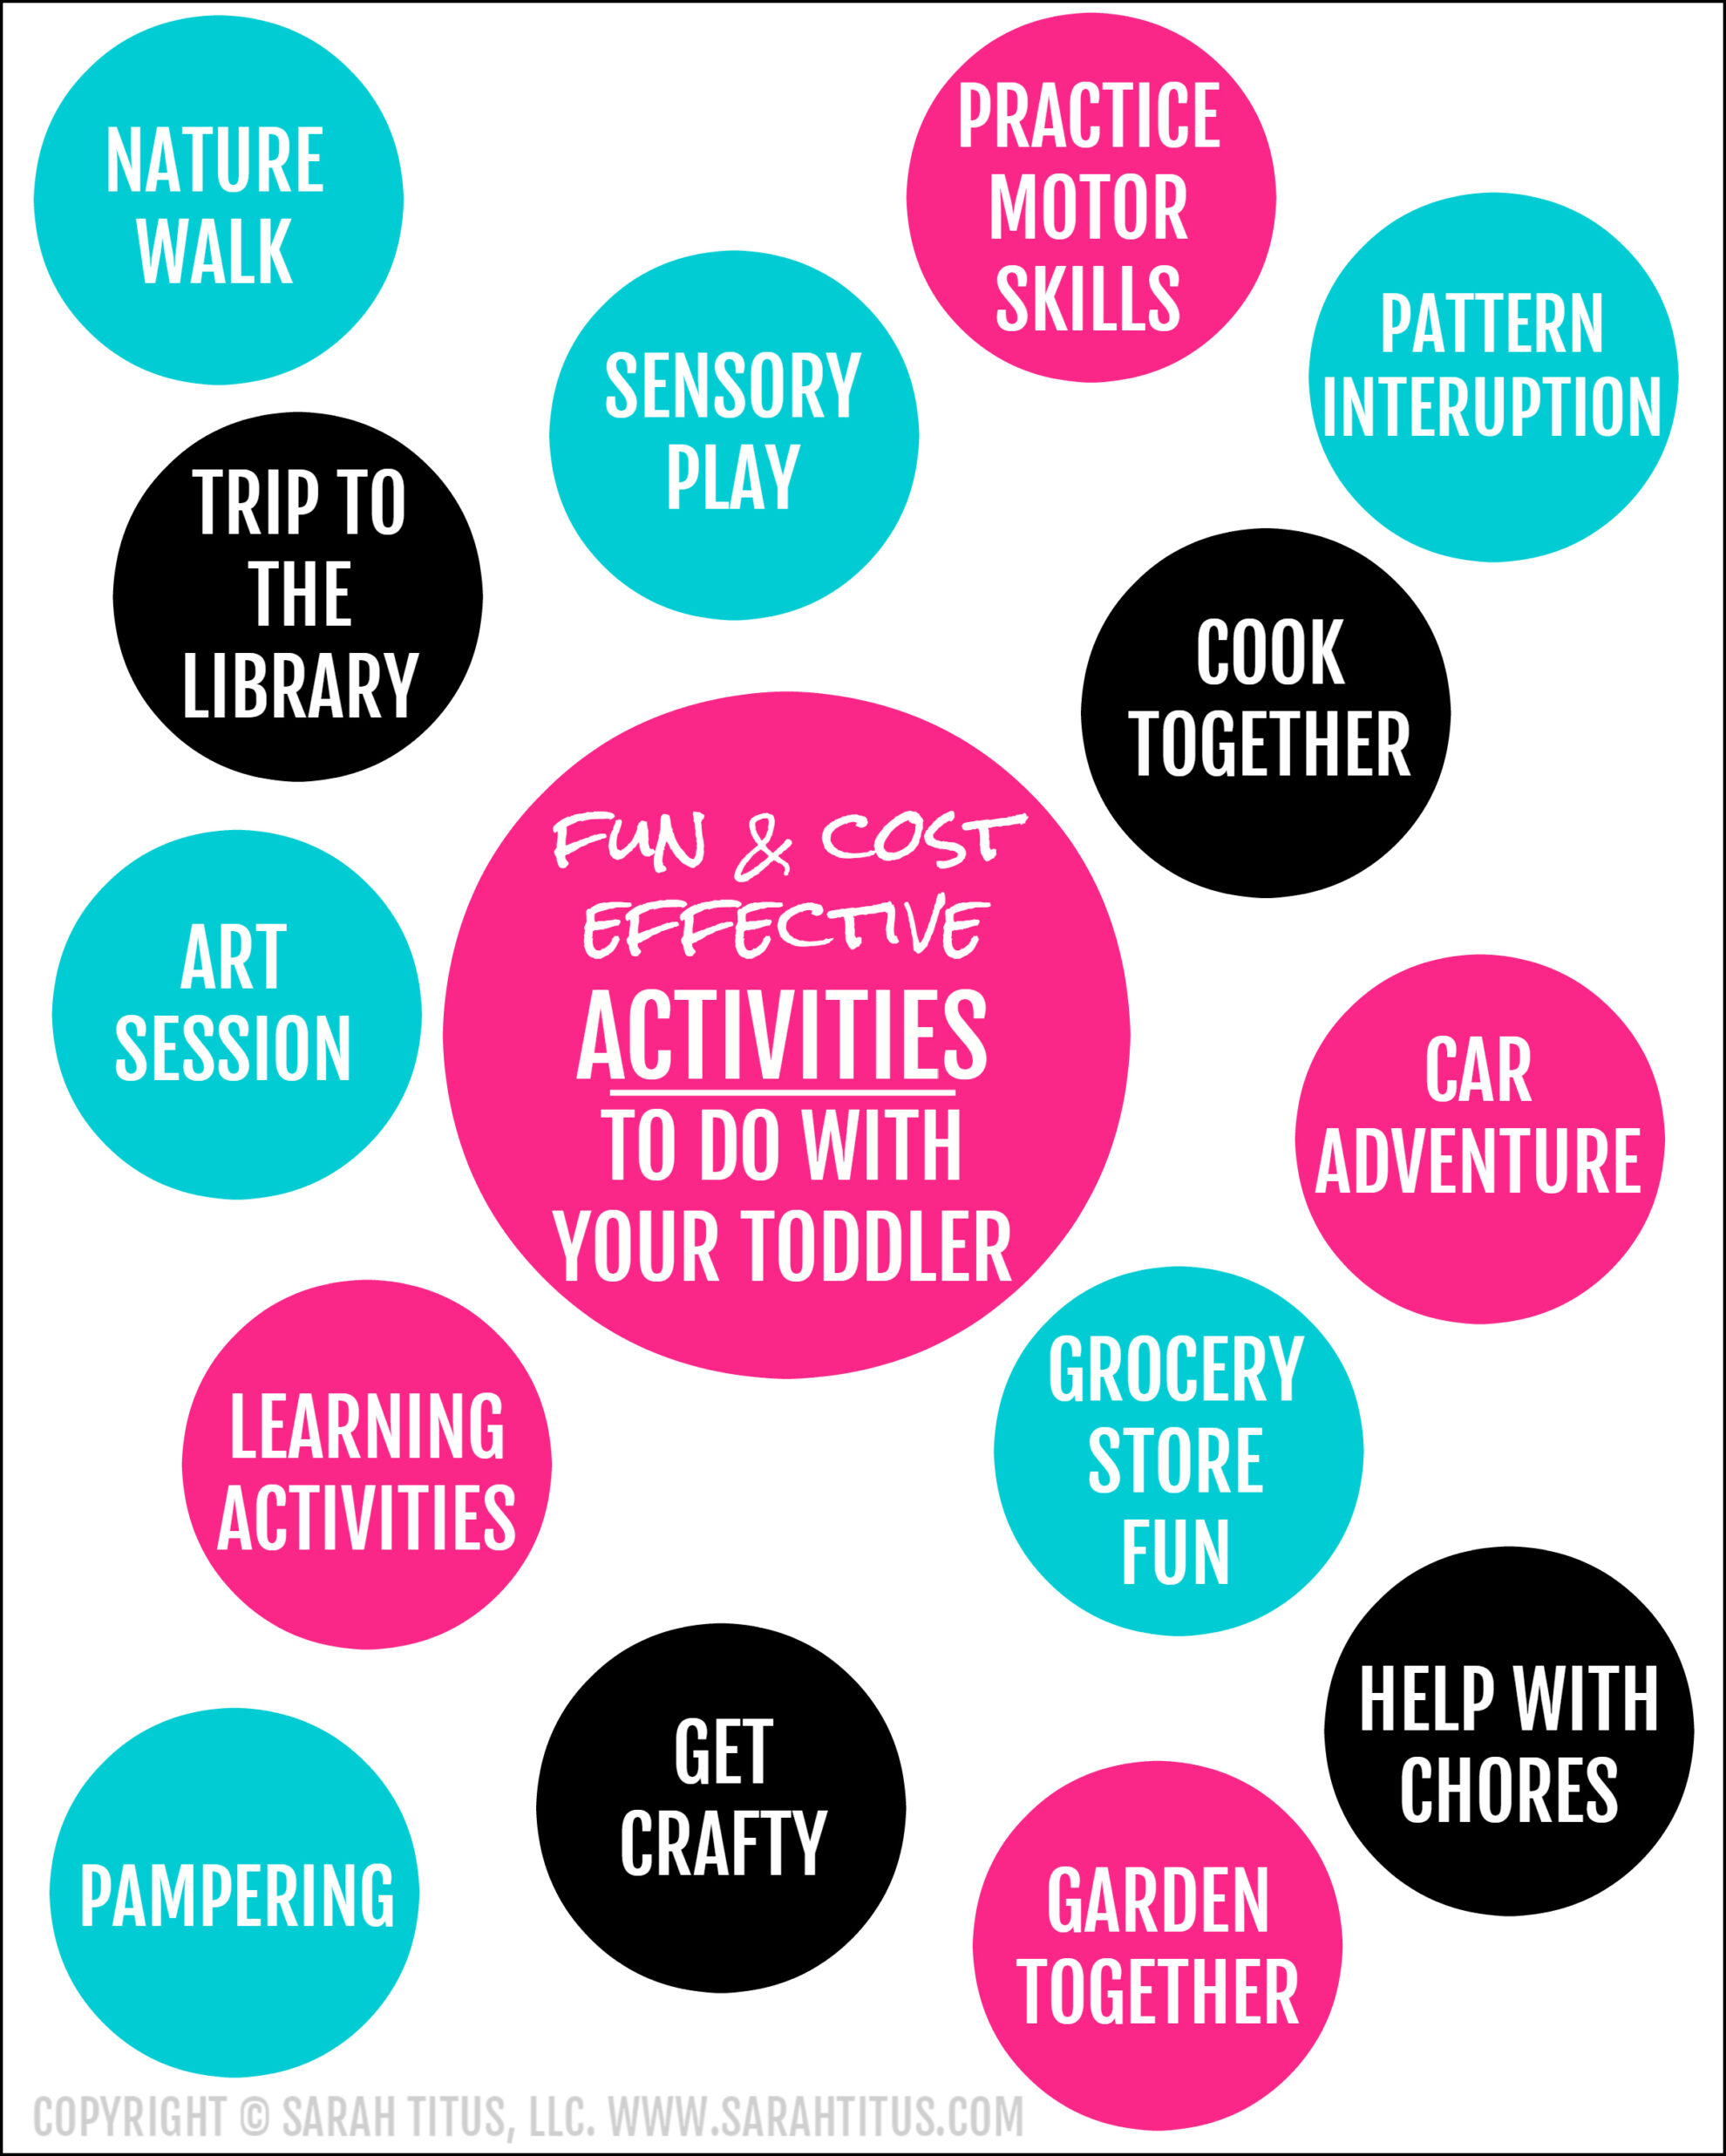 FUN AND COST EFFECTIVE ACTIVITIES TO DO WITH YOUR TODDLER